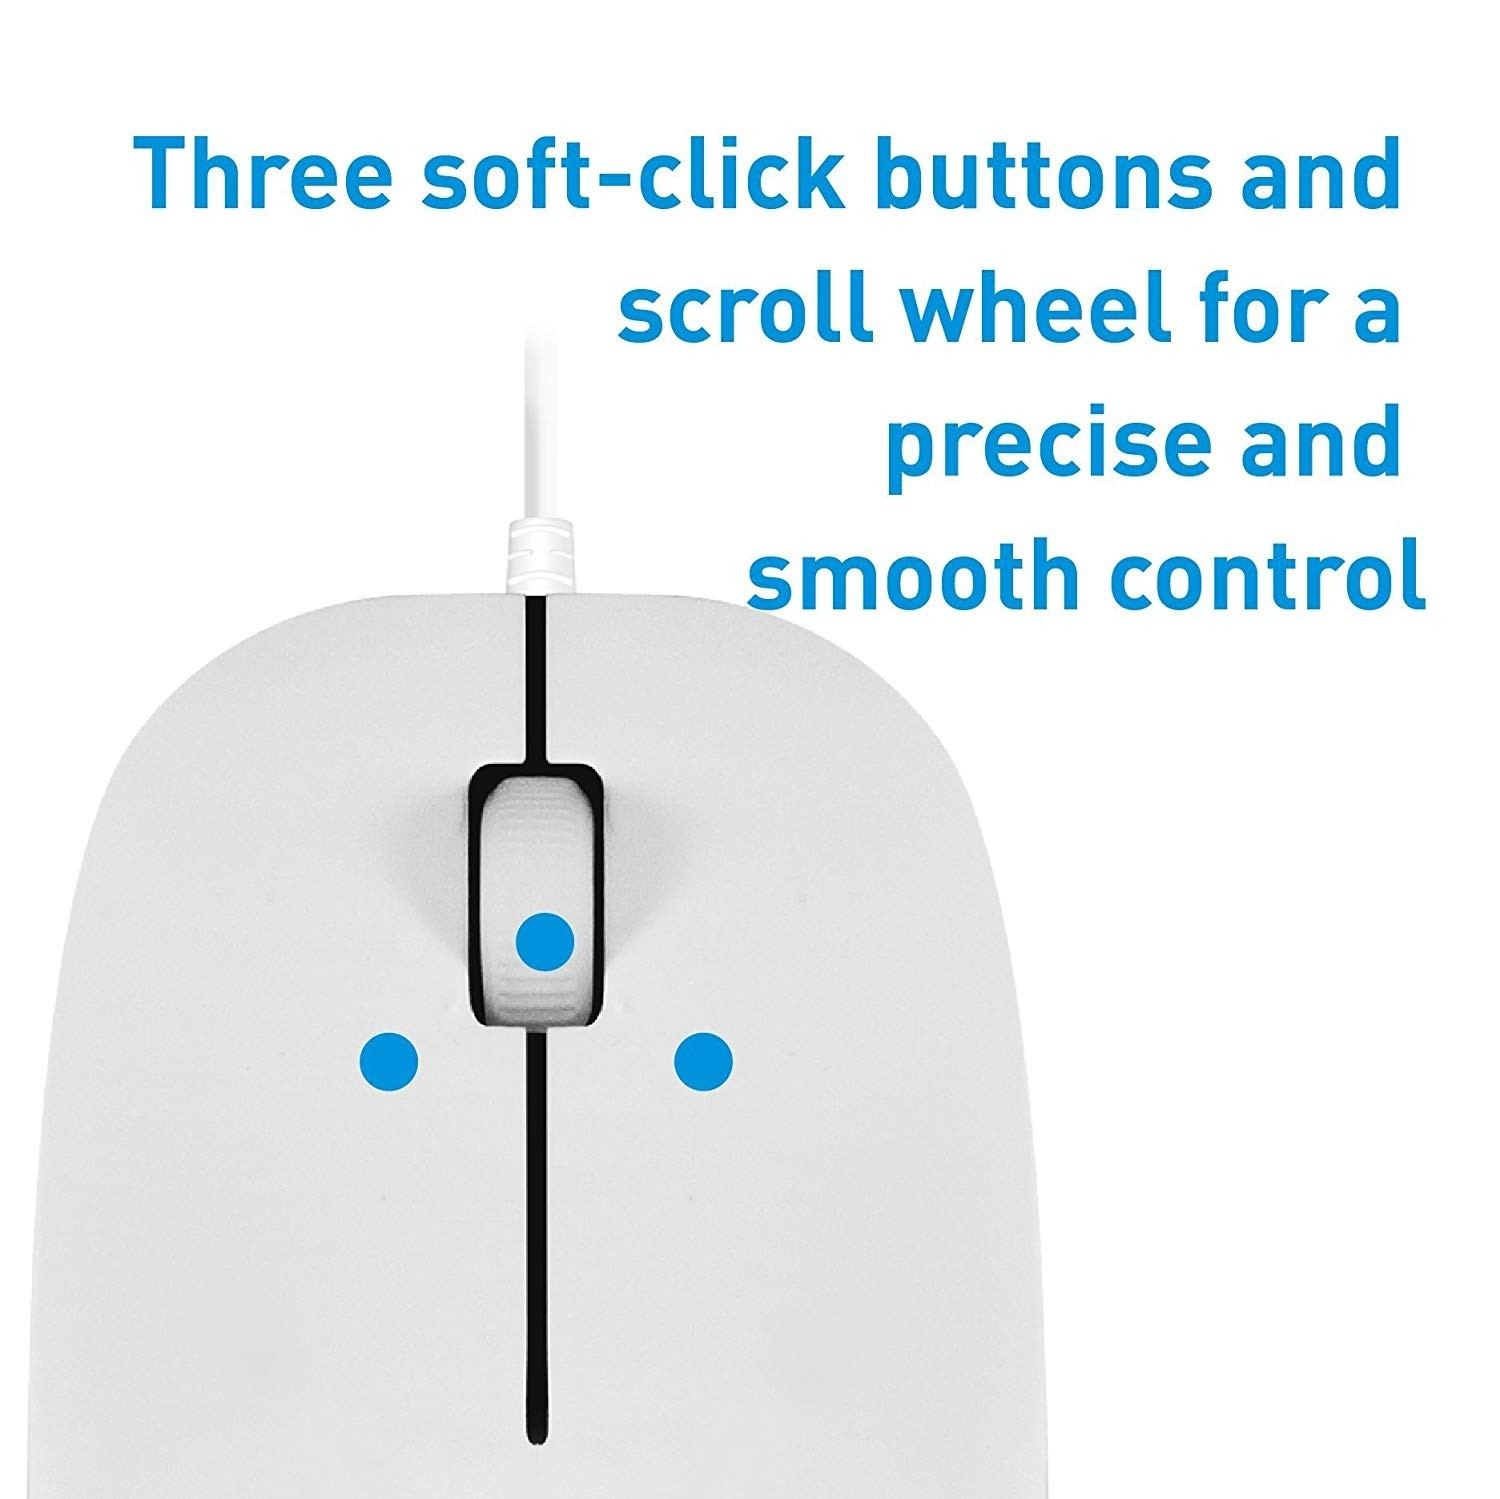 Macally USB Wired Computer Mouse with 3 Button, Scroll Wheel, 5 Foot Long Corded, Compatible with Windows PC, Apple Macbook Pro/Air, iMac, Mac Mini, Laptops - White, XMOUSE